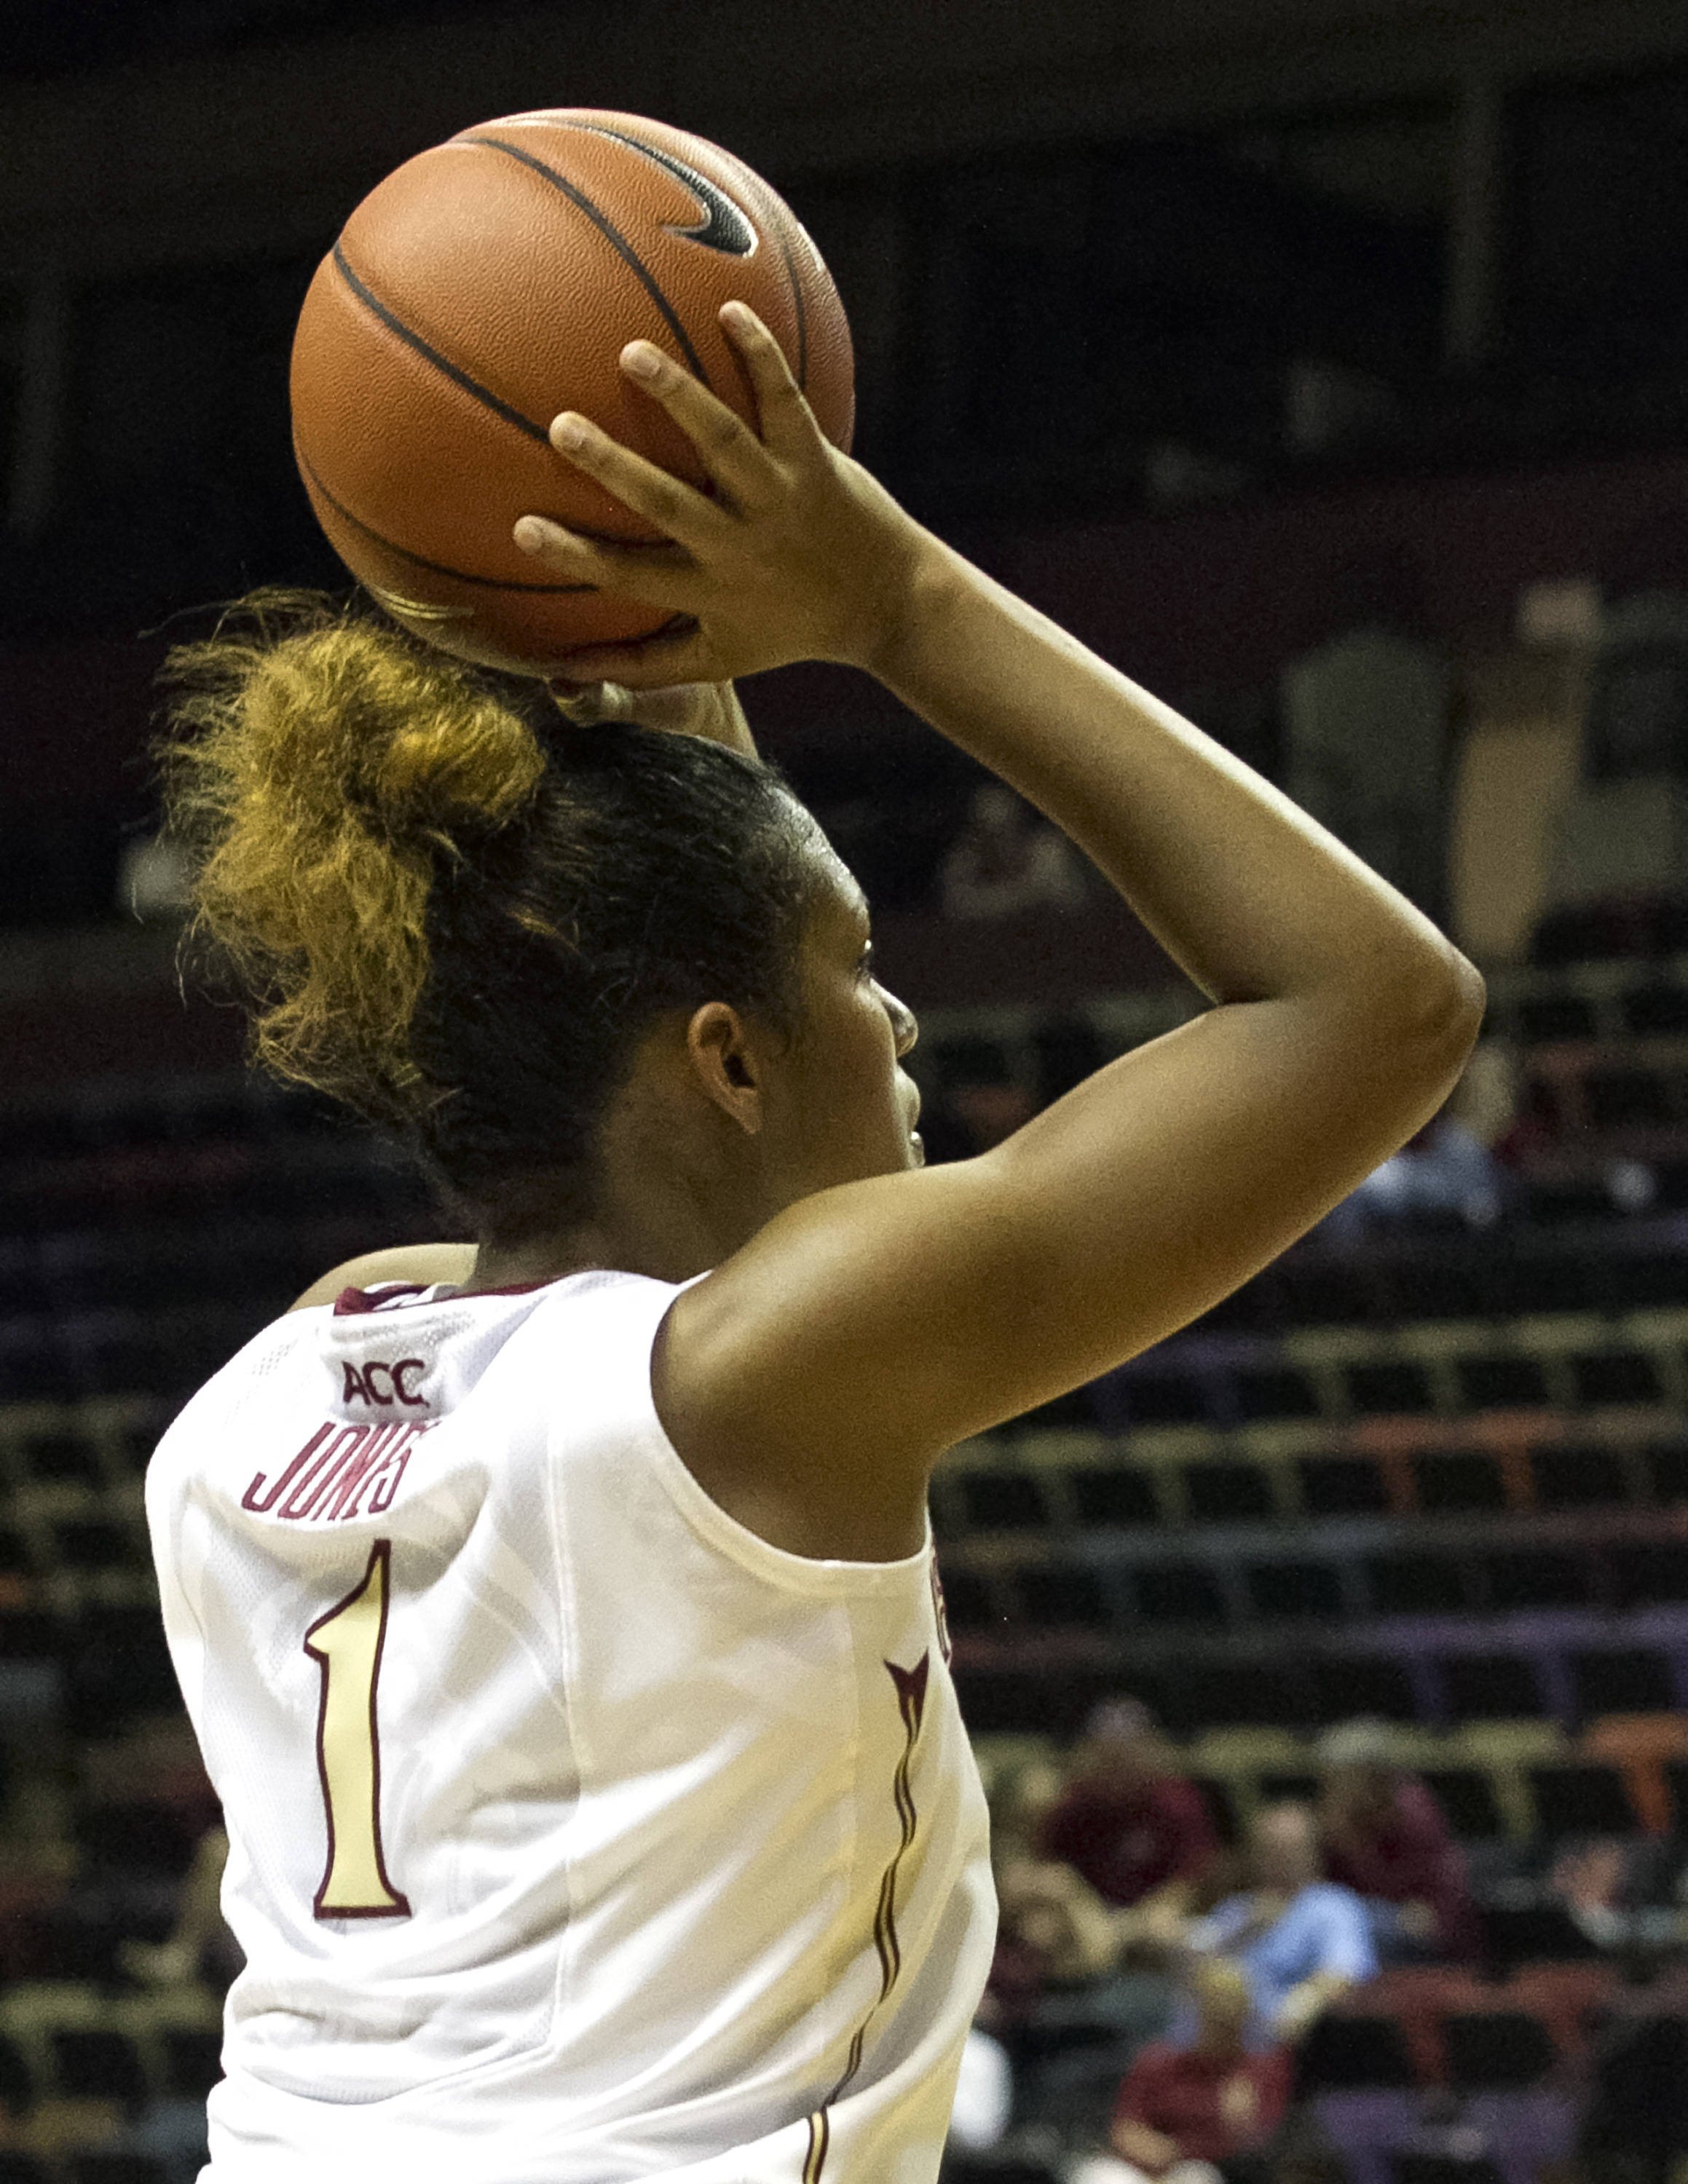 Morgan Jones (1), getting set for her jumper, FSU vs Jacksonville, 12-08-13,  (Photo by Steve Musco)